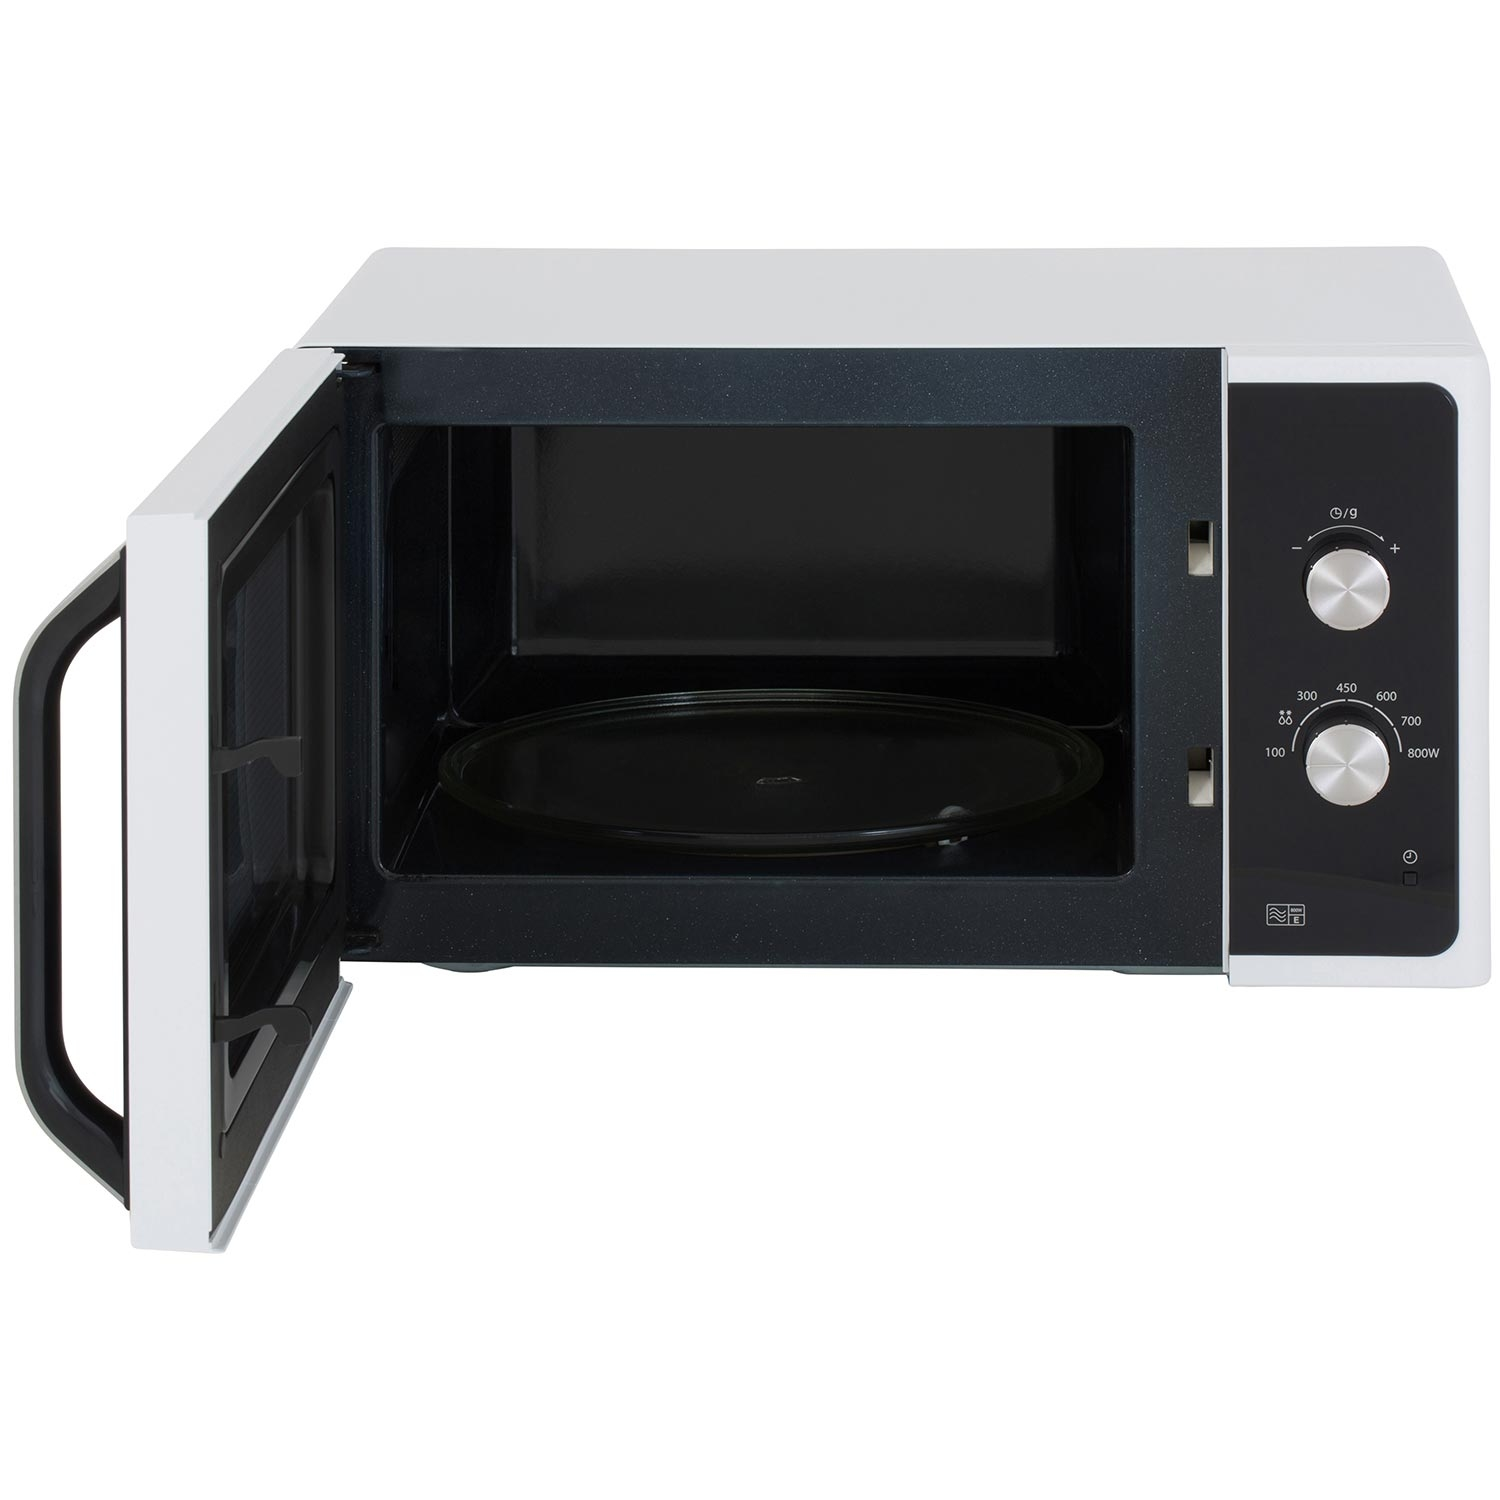 Samsung Solo Microwave - 0